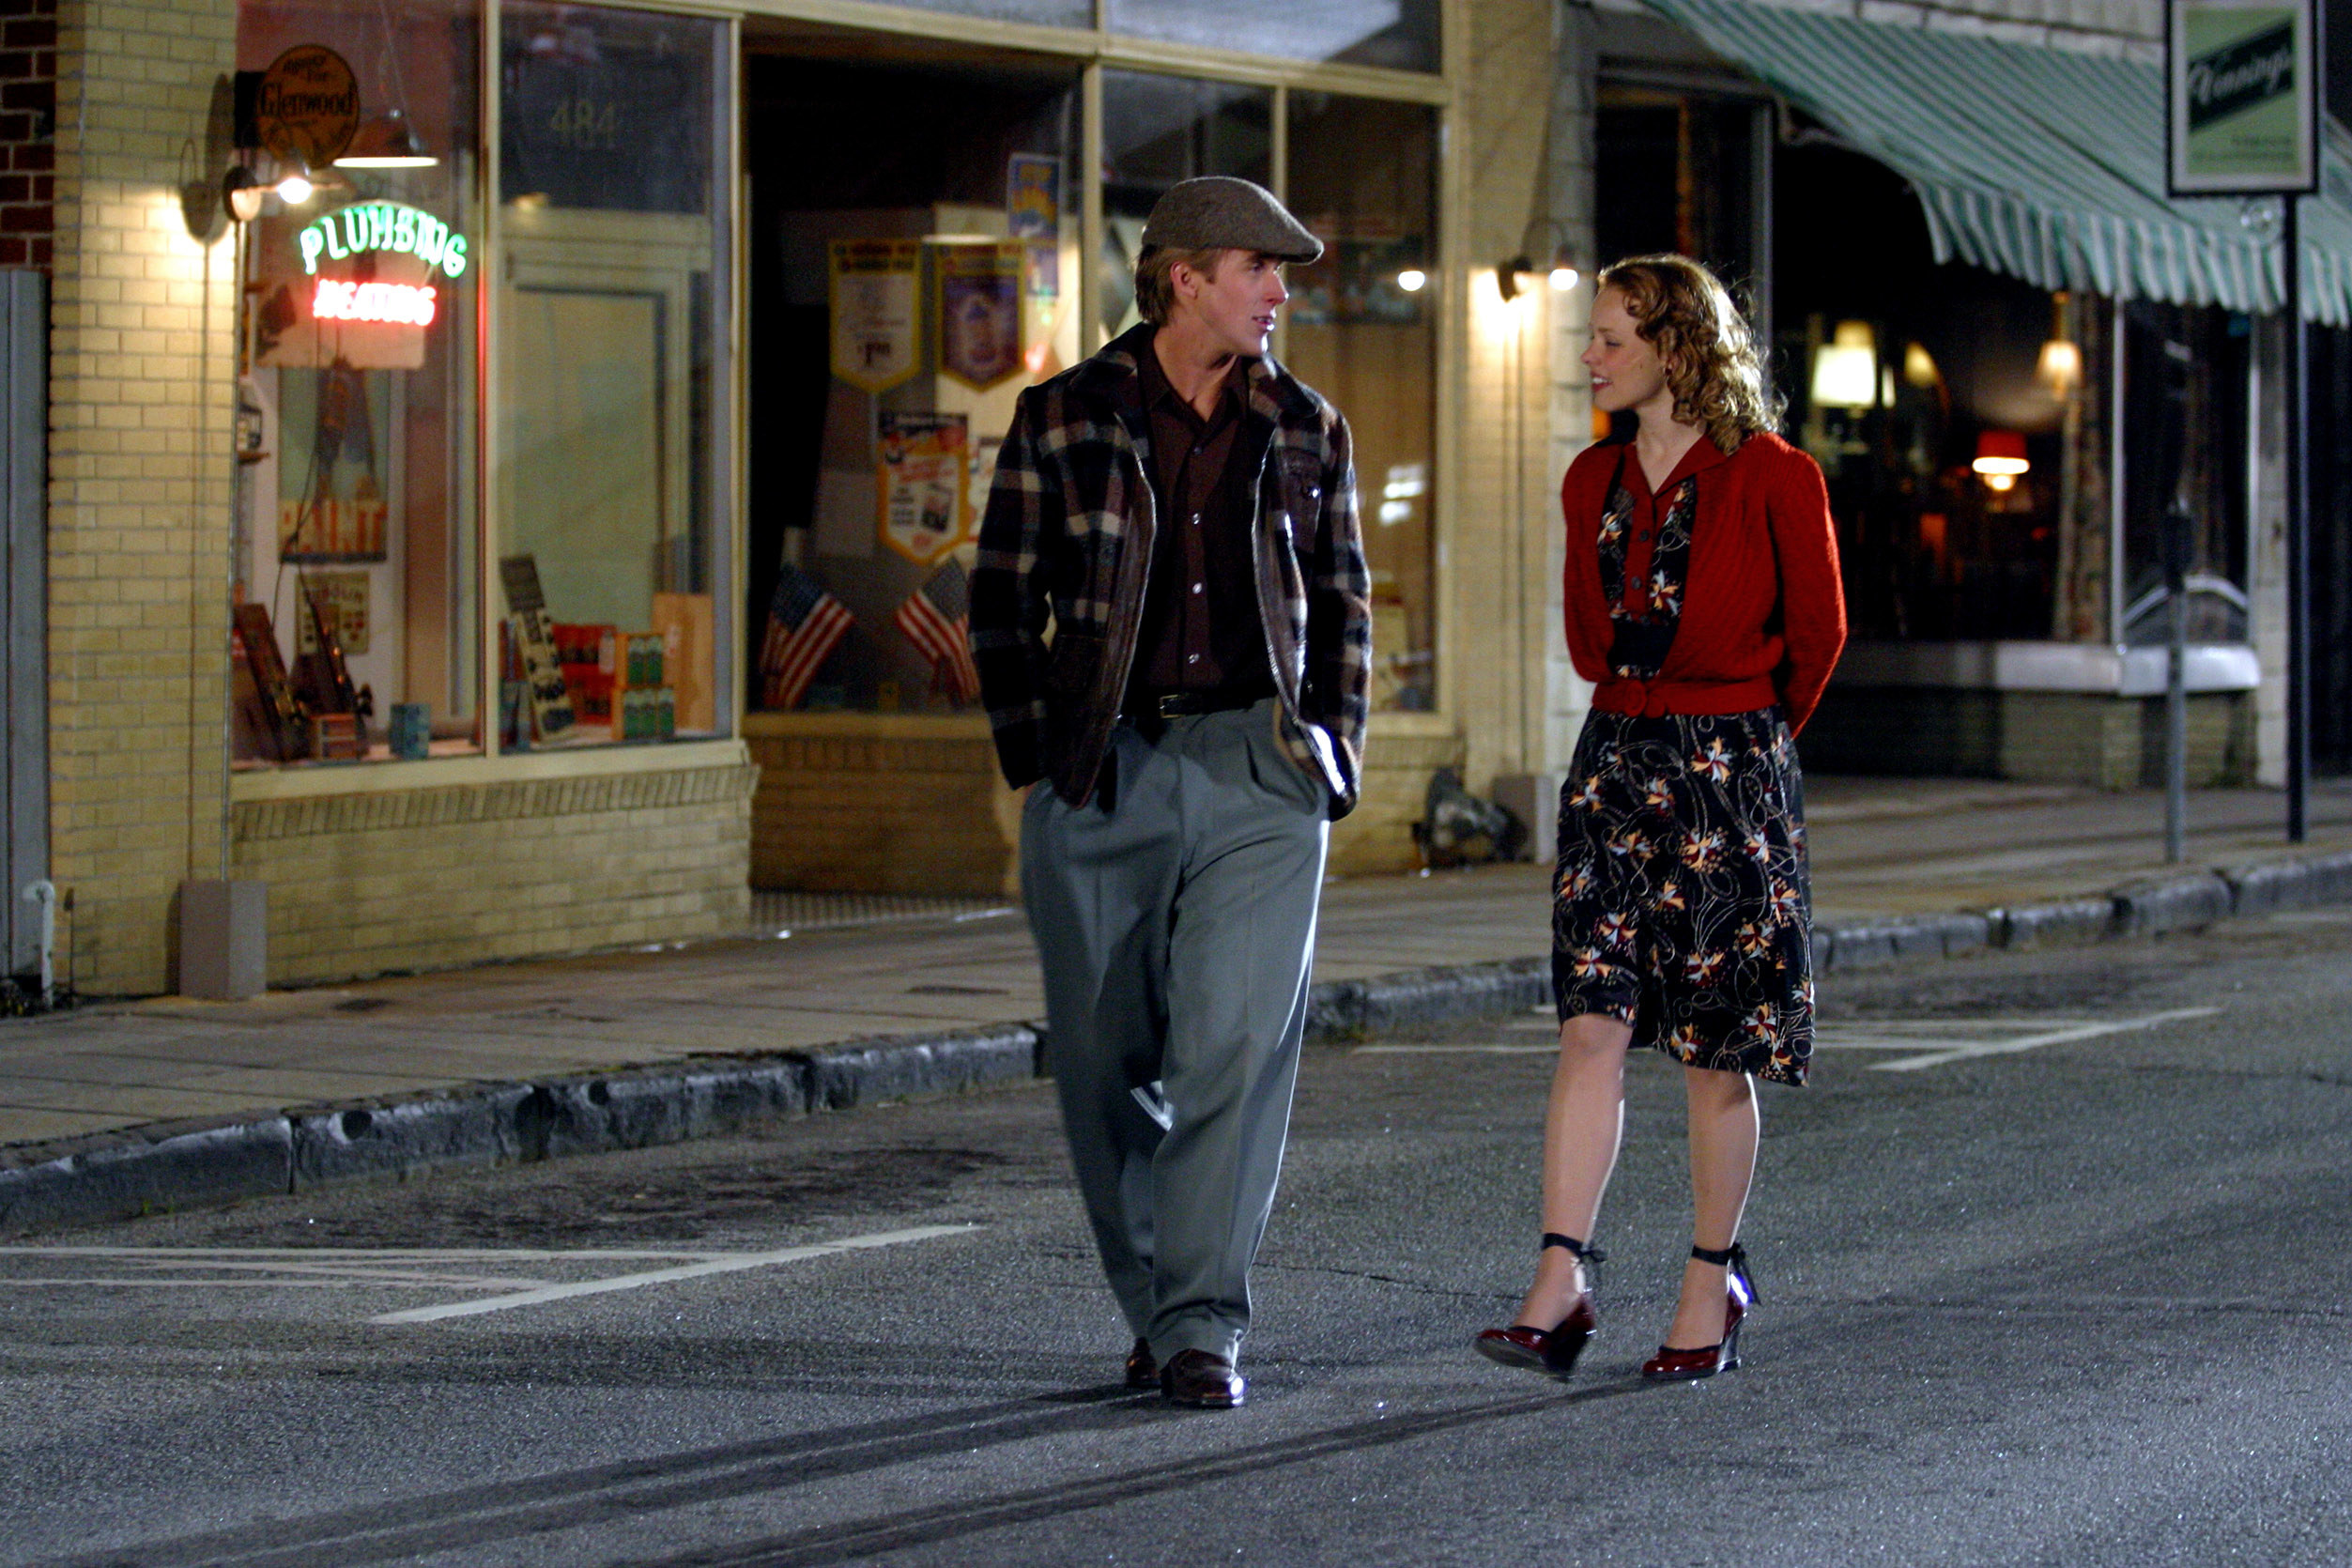 Noah and Allie walking down a road